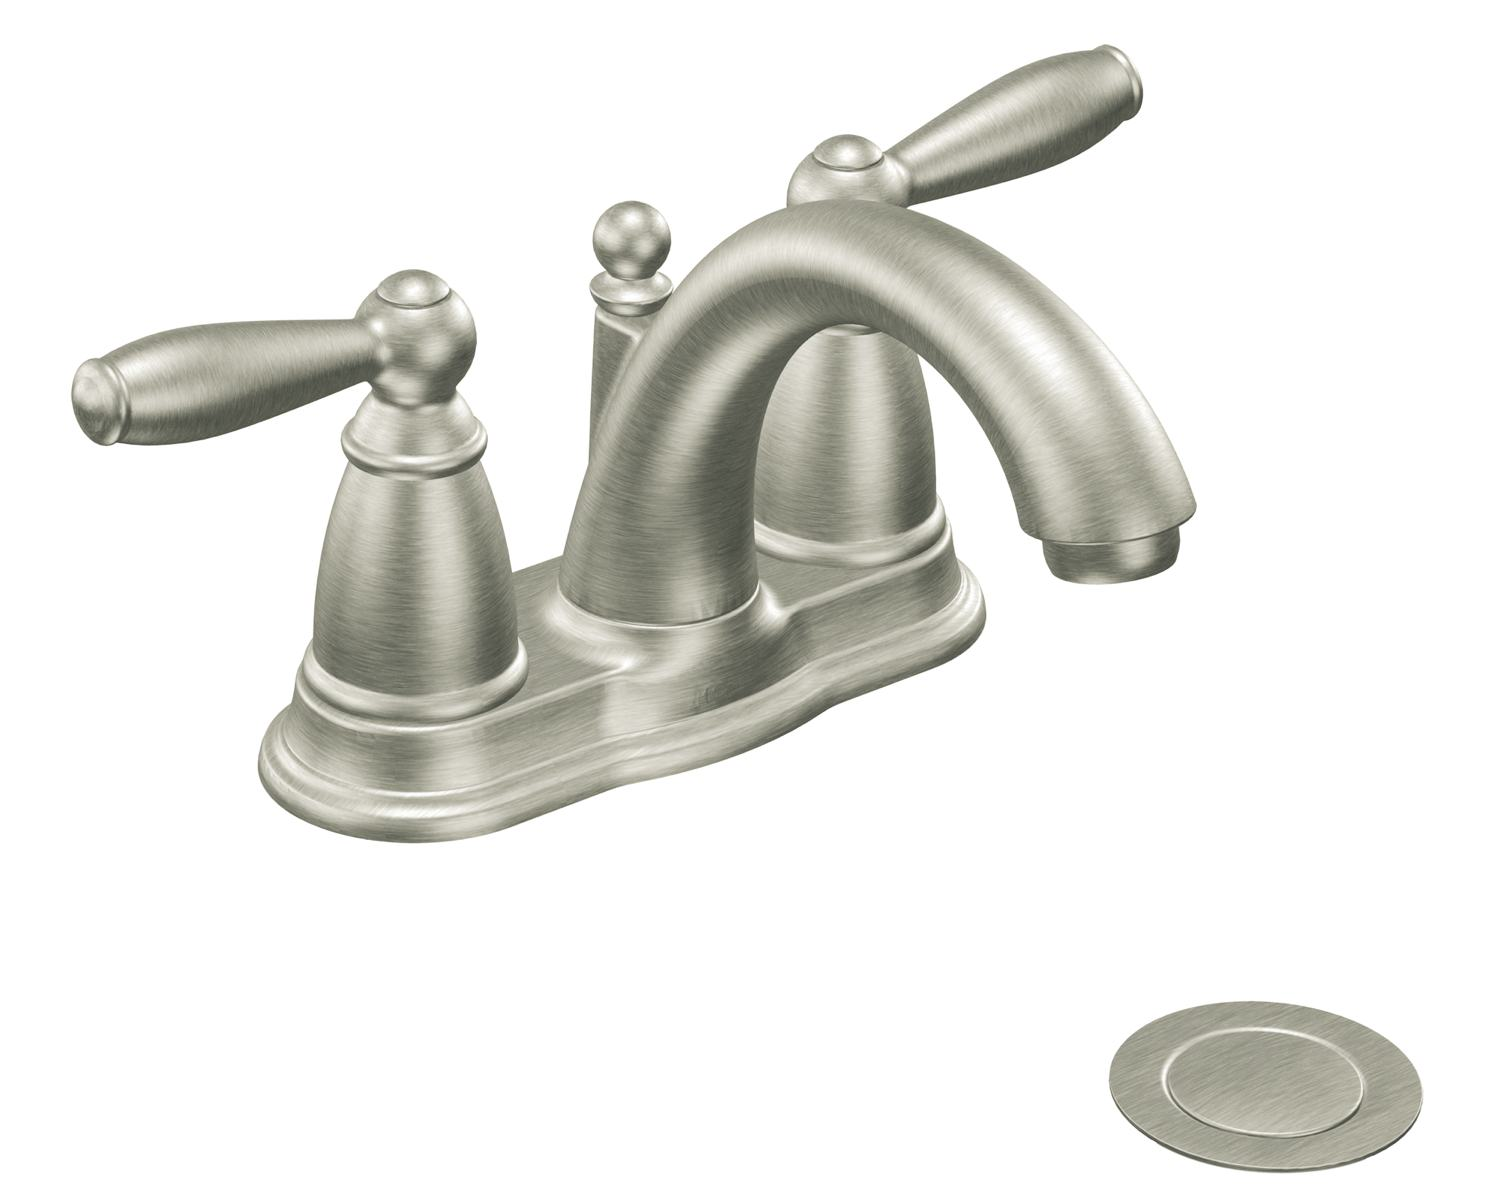 Under the Toronto Sun: $2,000 faucets